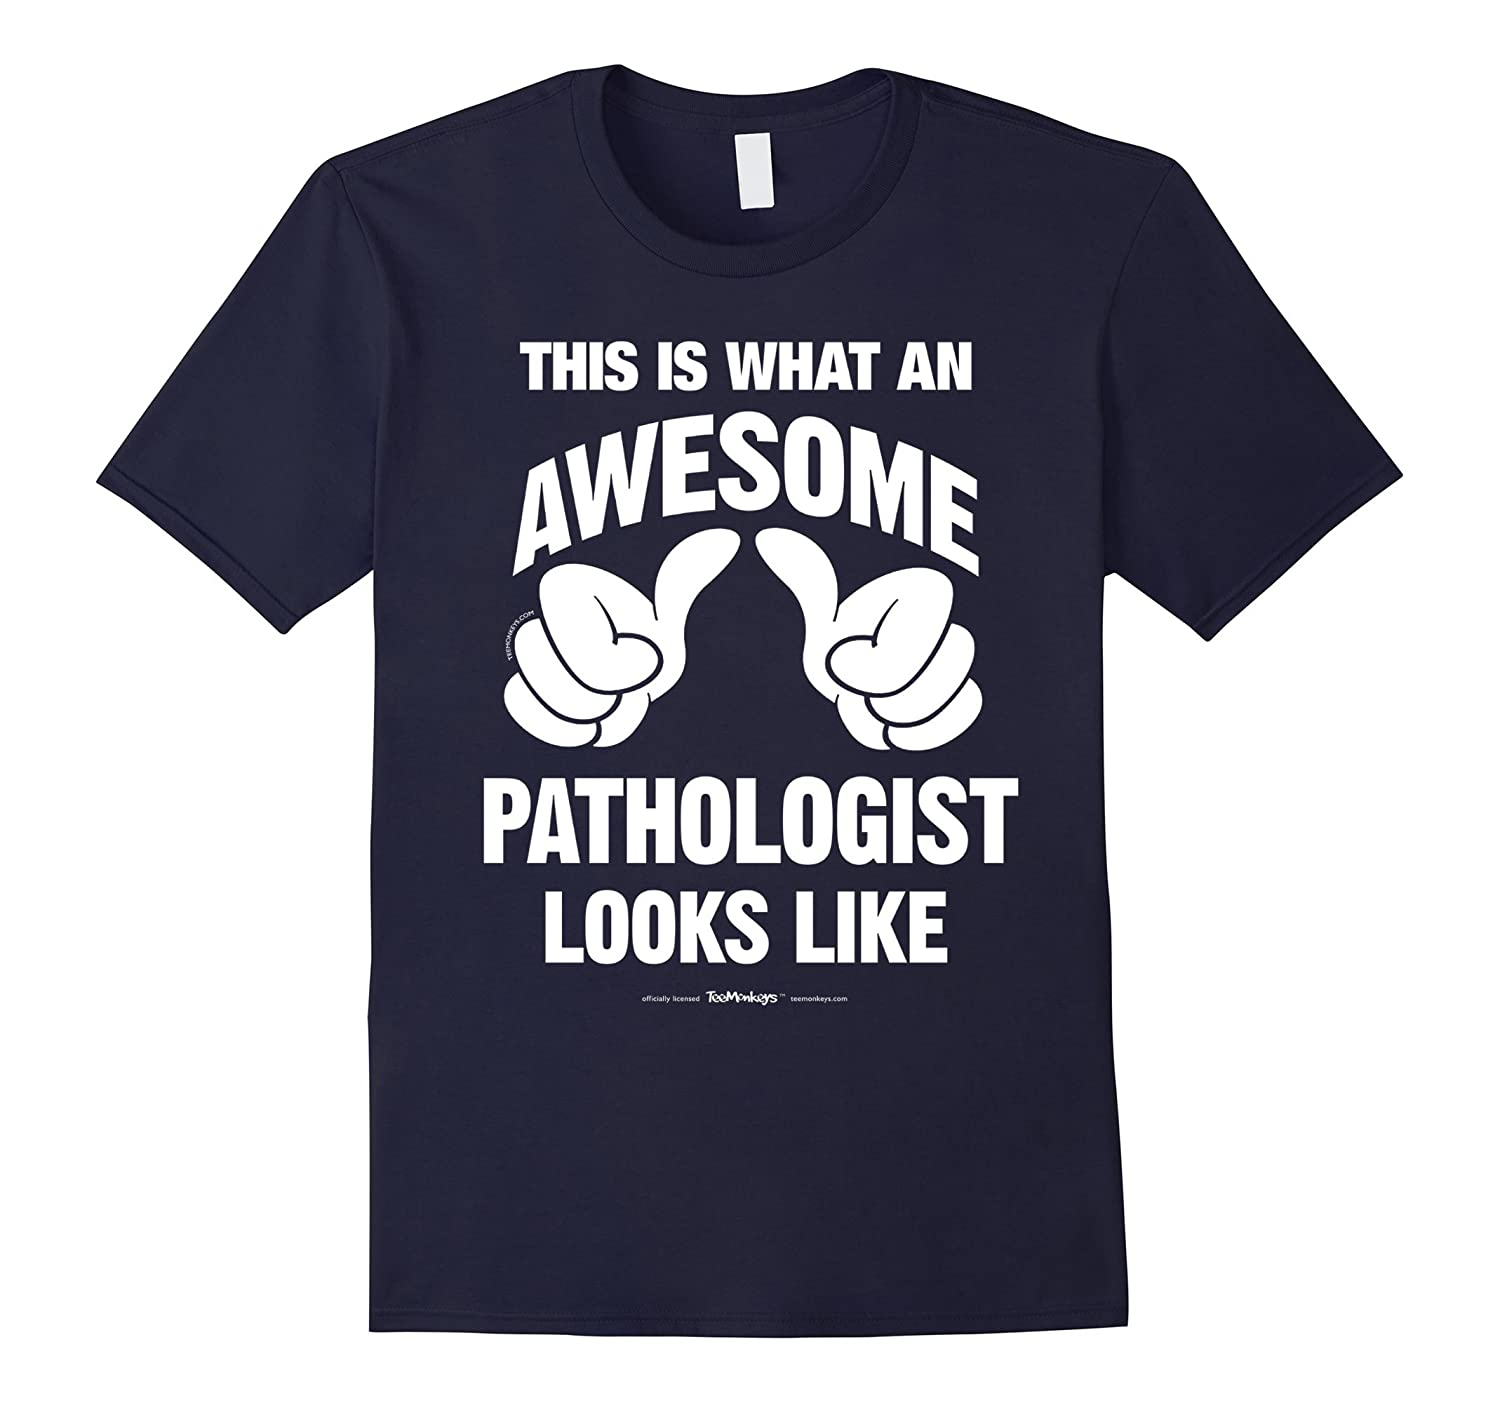 This Is What An Awesome Pathologist Looks Like Funny T-Shirt-Vaci